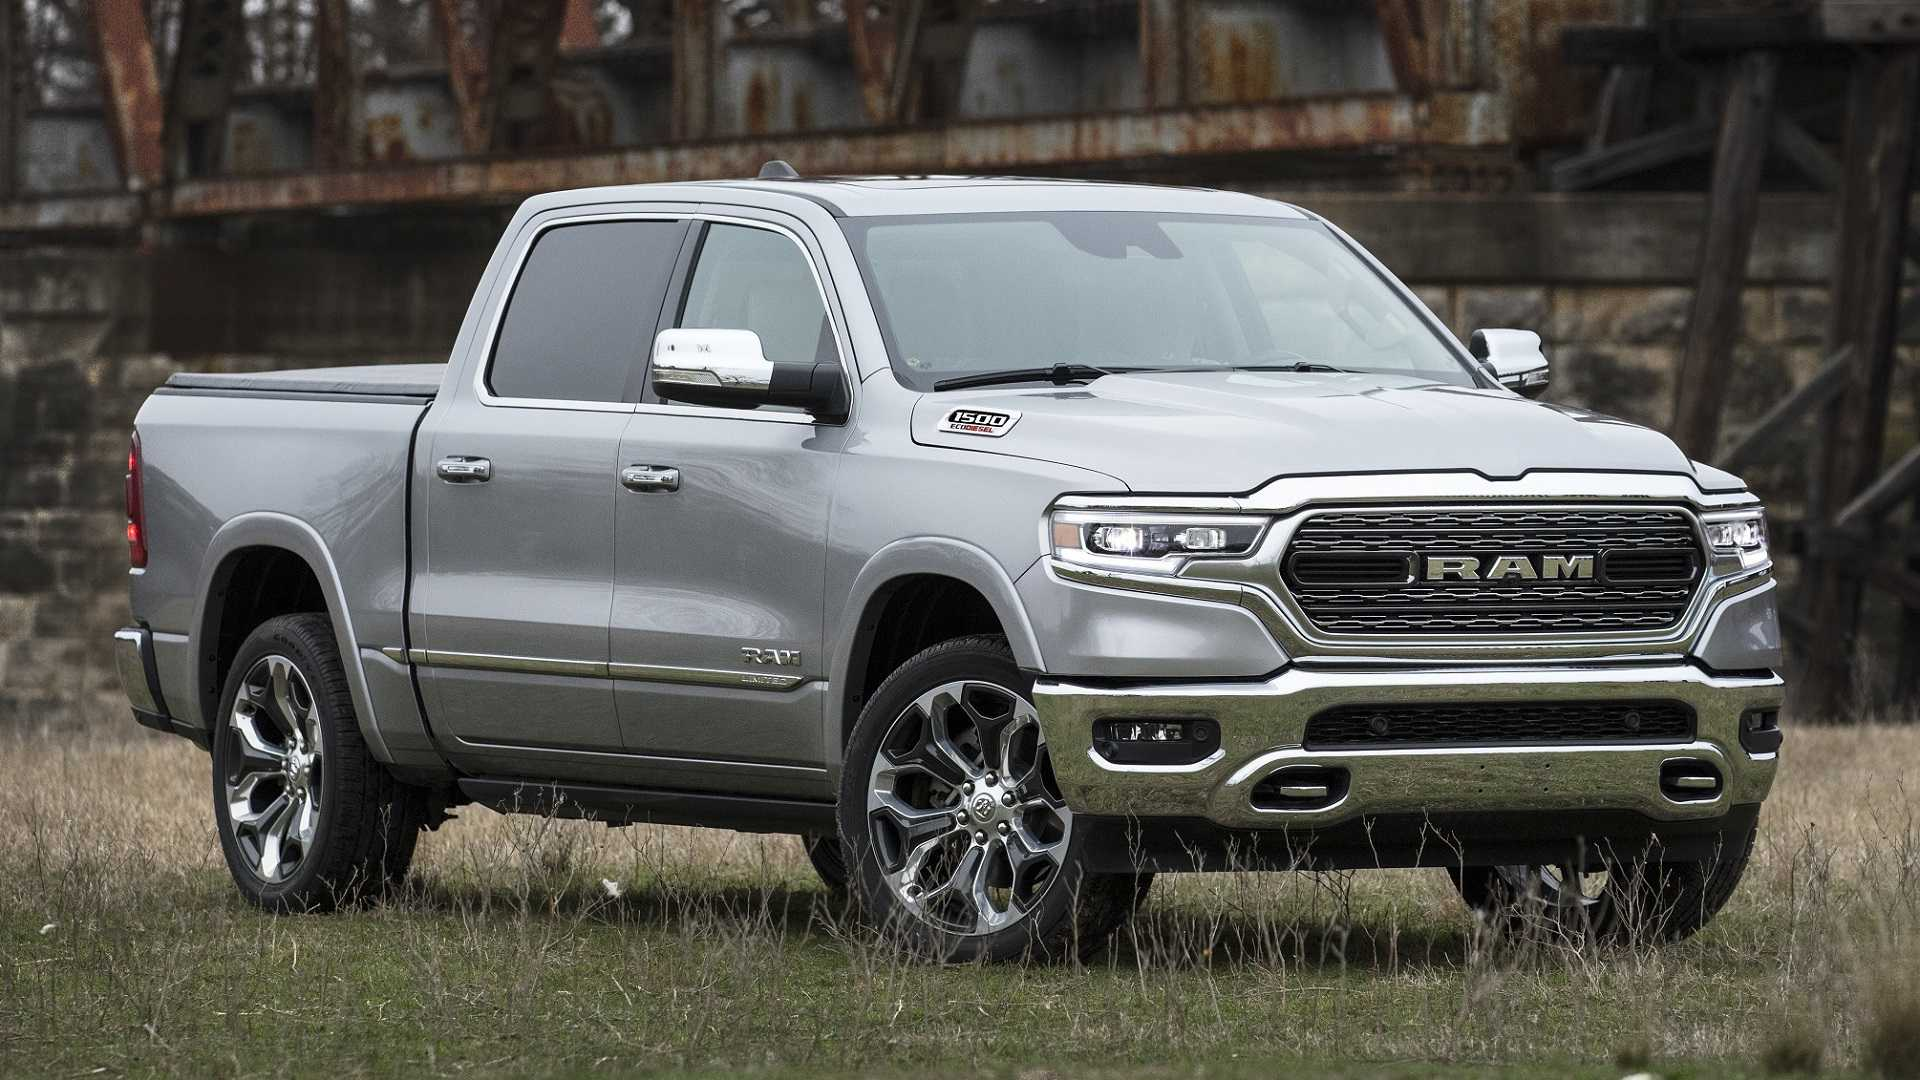 51 Gallery of Dodge Truck 2020 Ratings with Dodge Truck 2020